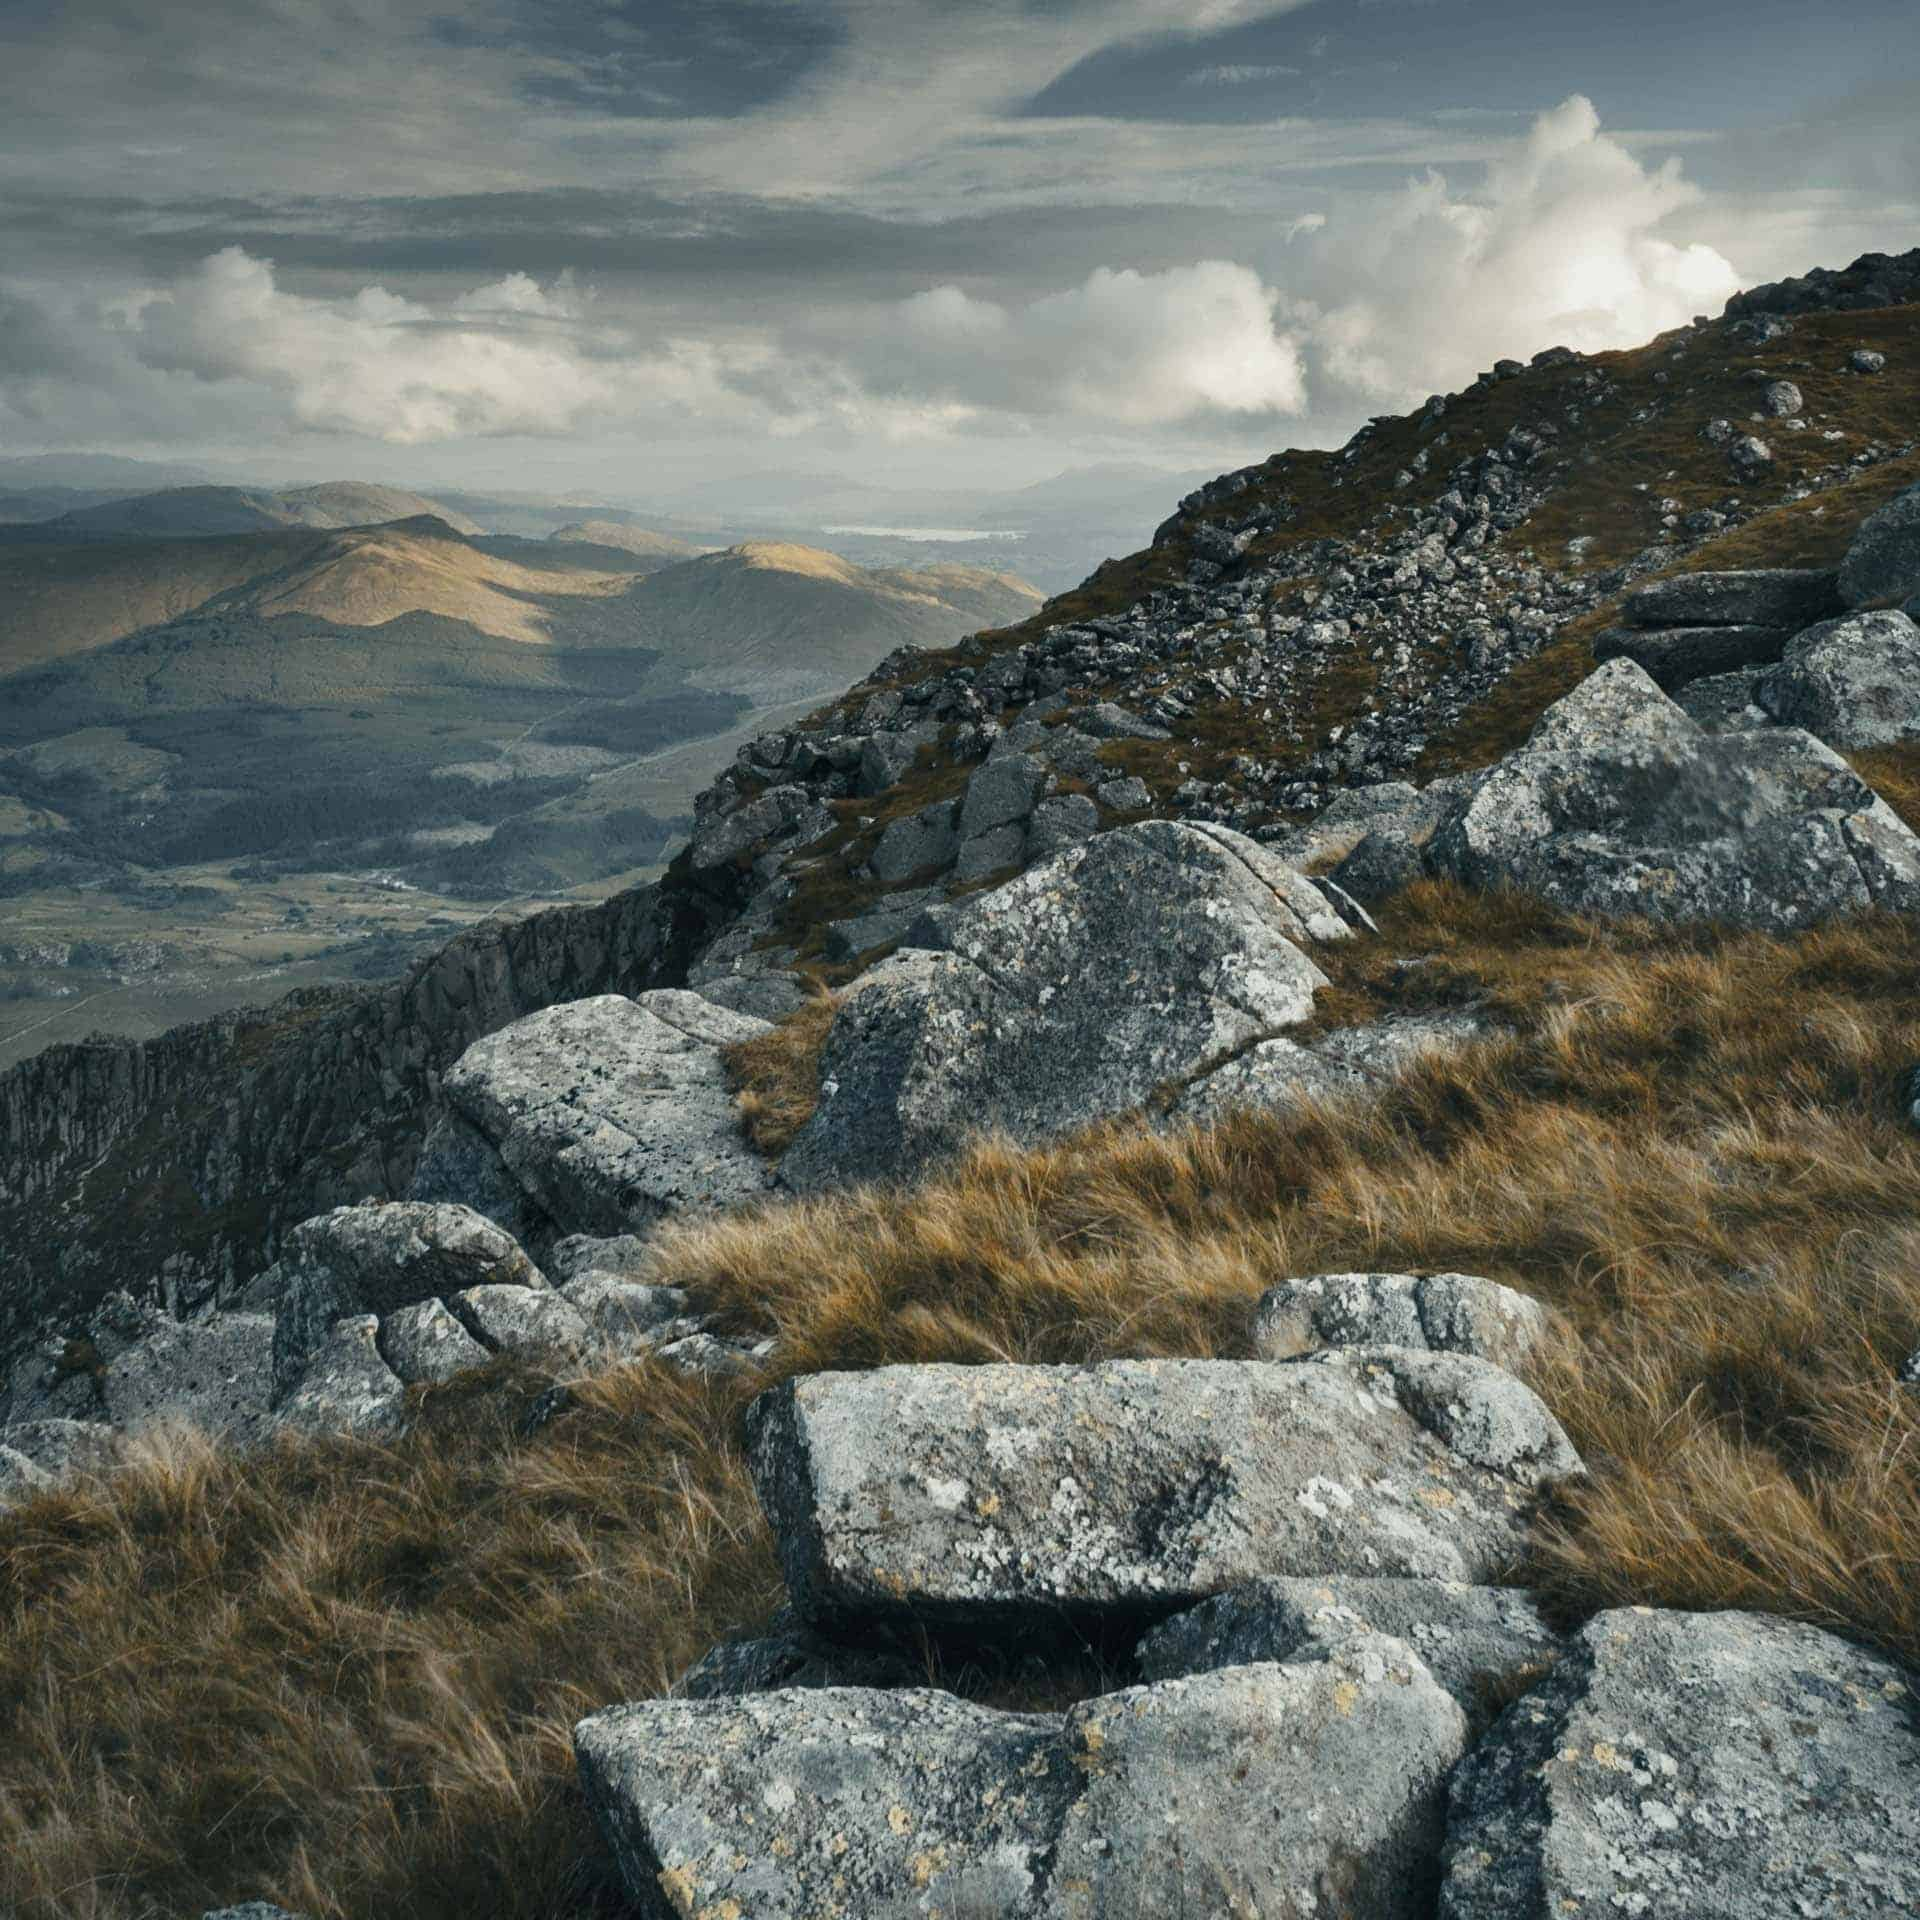 Welsh mountains, photographs from Instagram with atmospheric filter added.